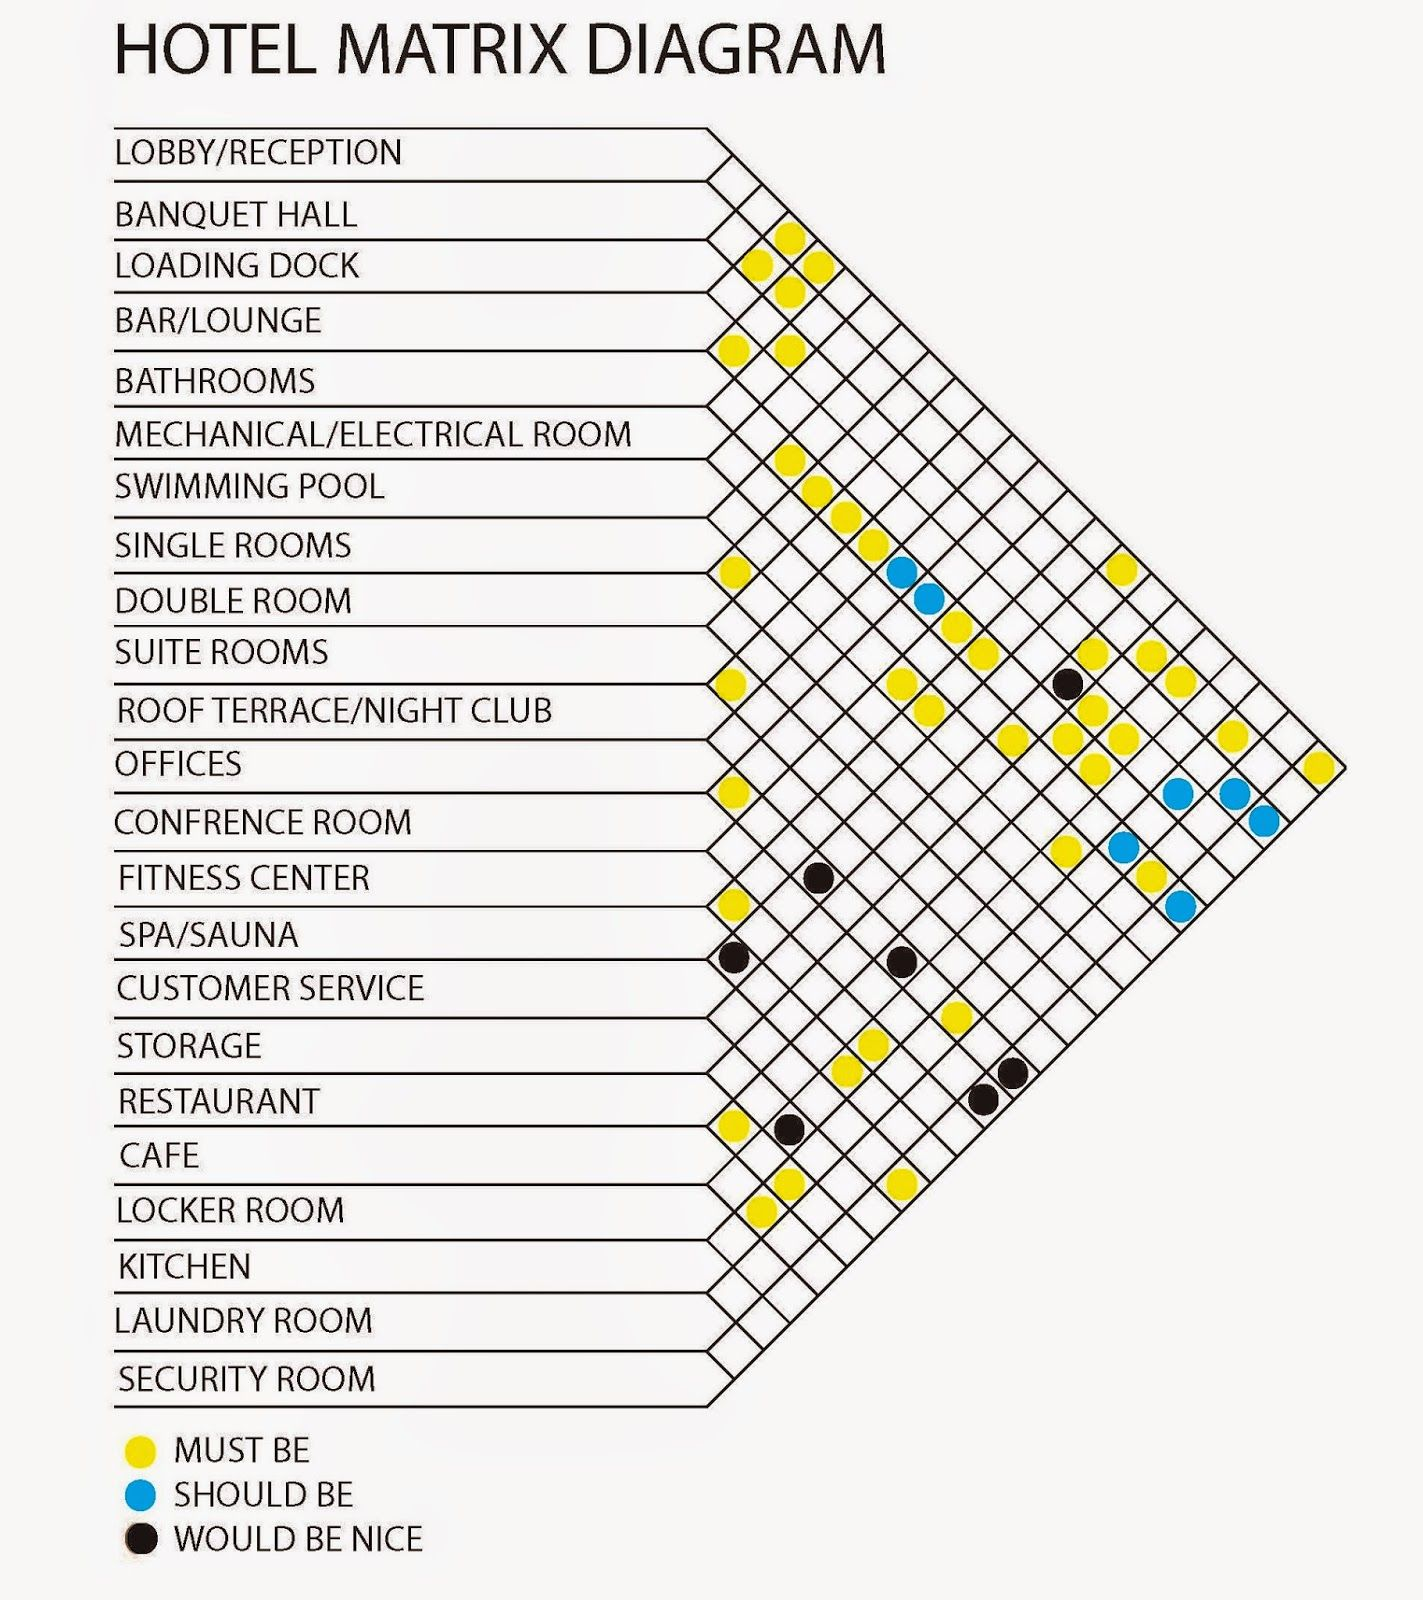 hotel matrix diagram